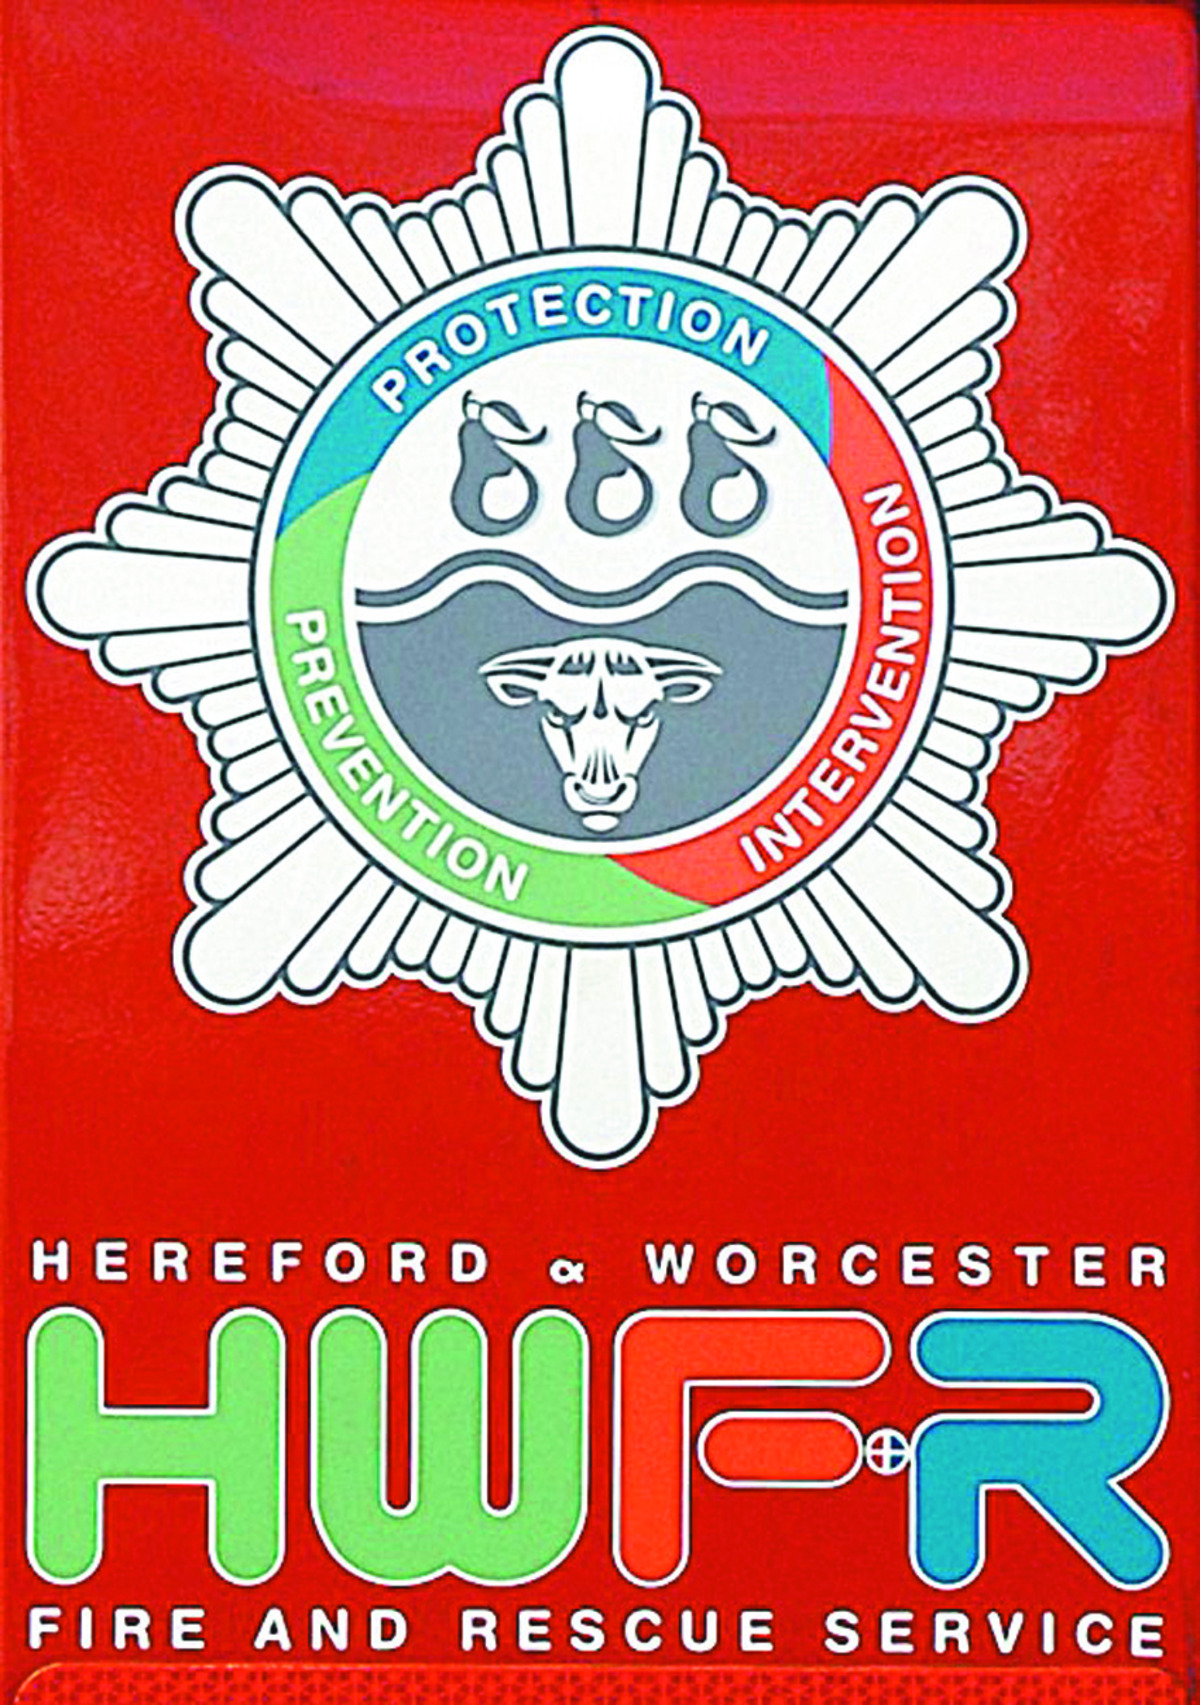 Hereford and Worcester Fire and Rescue Service: concerns over buildings plan